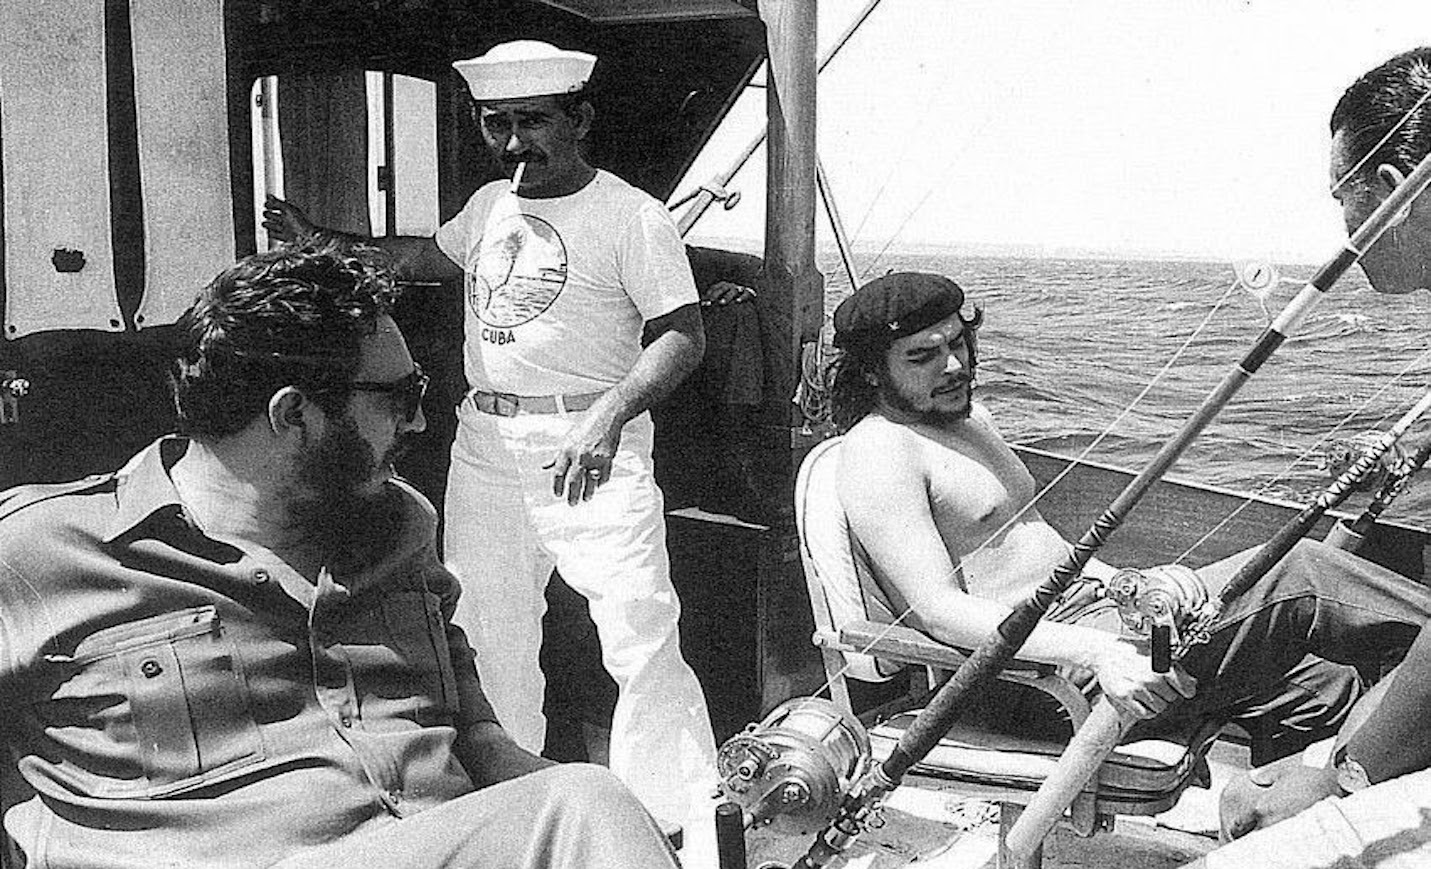 Che Guevara and Fidel Castro fishing, 1960